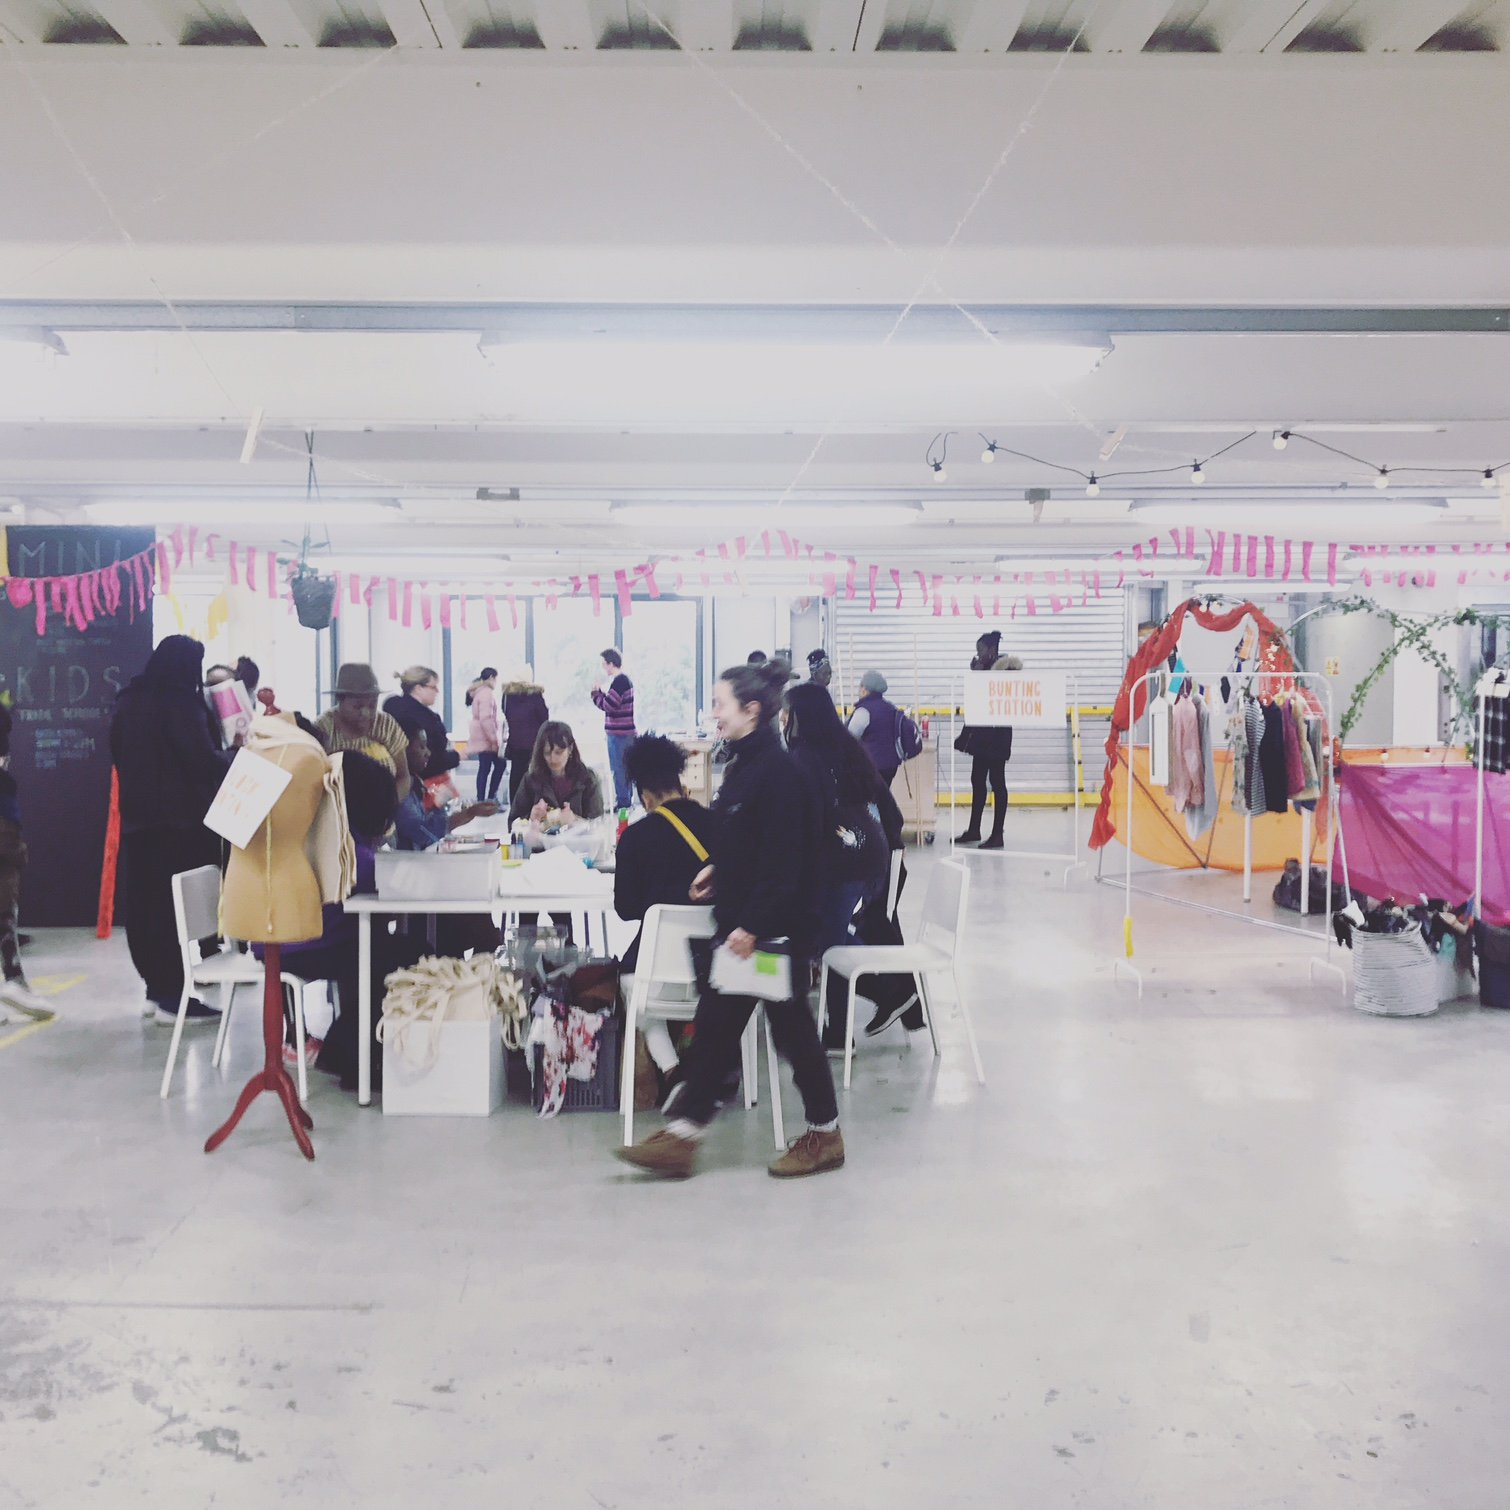 The Every One Every Day warehouse, a shared maker space for the local community. Image via Every One Every Day.